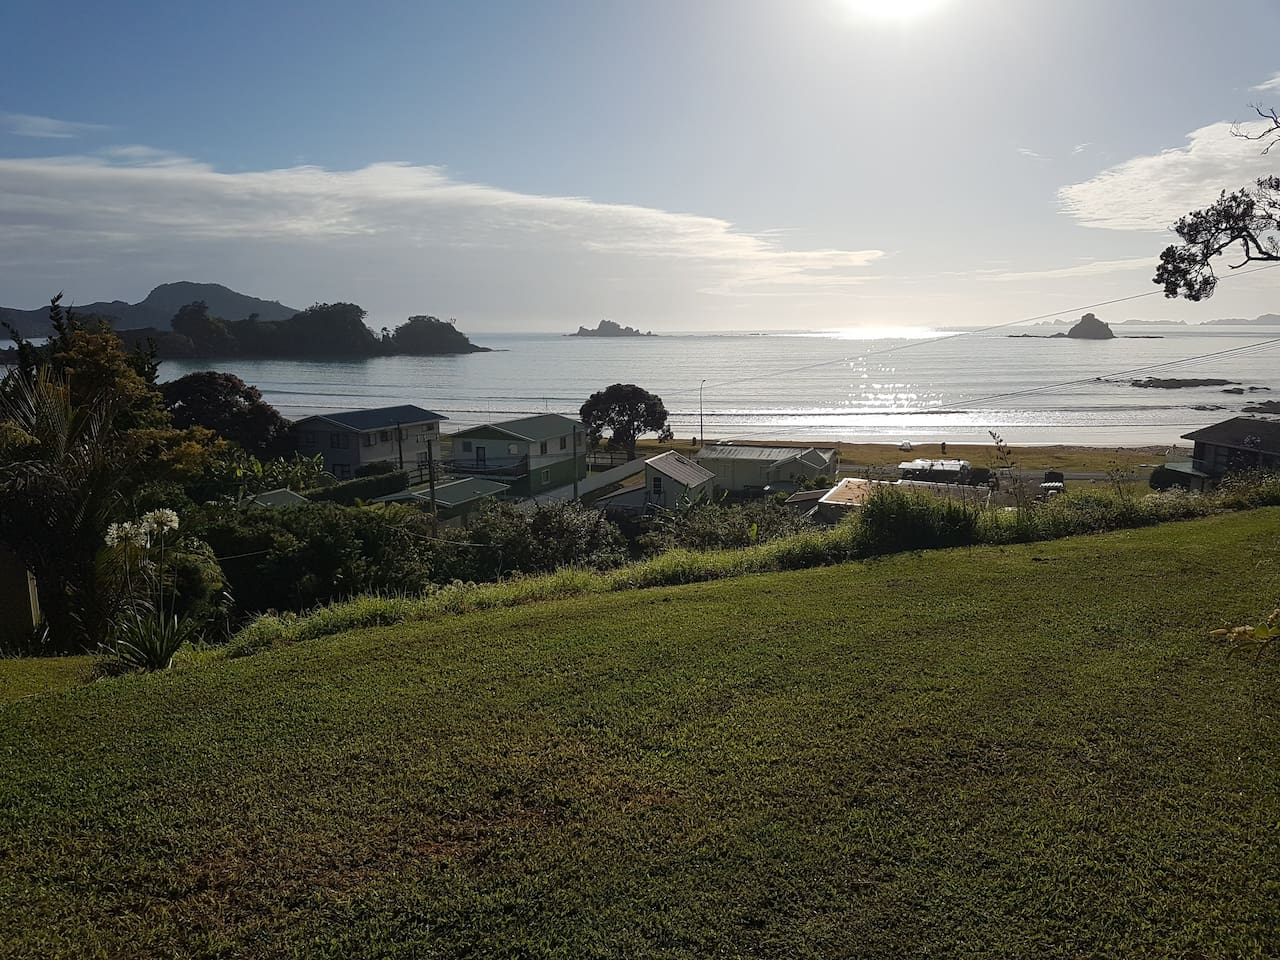 Want to camp at a unique top spot location? We offer you a unique spot with an amazing view looking out to the horizons... We expect that you will love camping here!